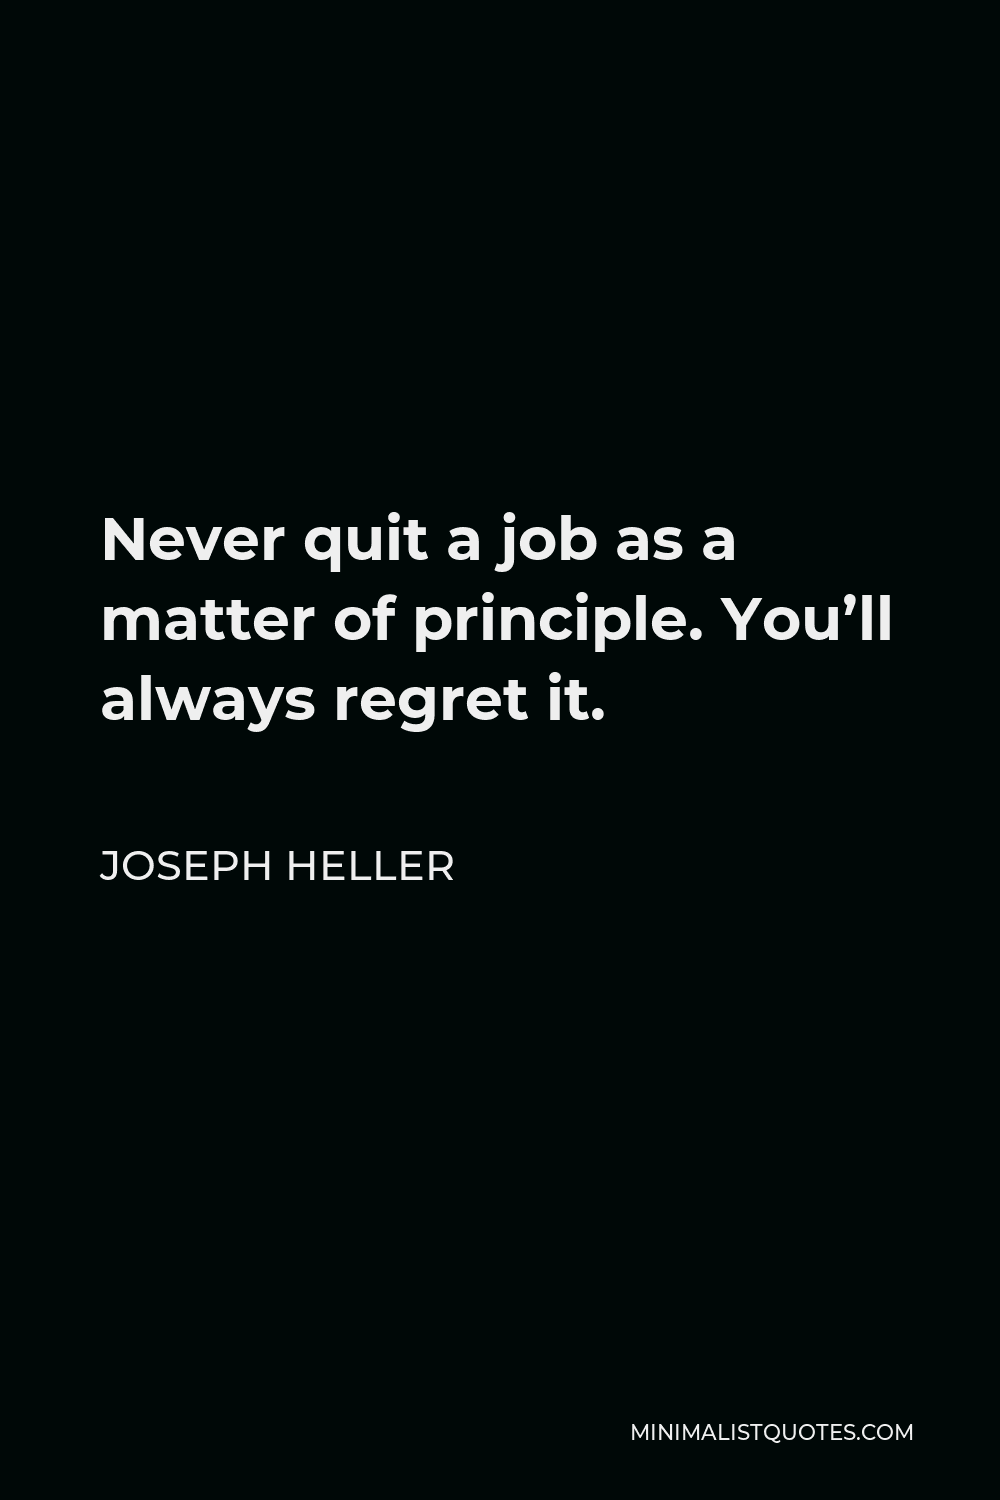 Joseph Heller Quote - Never quit a job as a matter of principle. You'll always regret it.